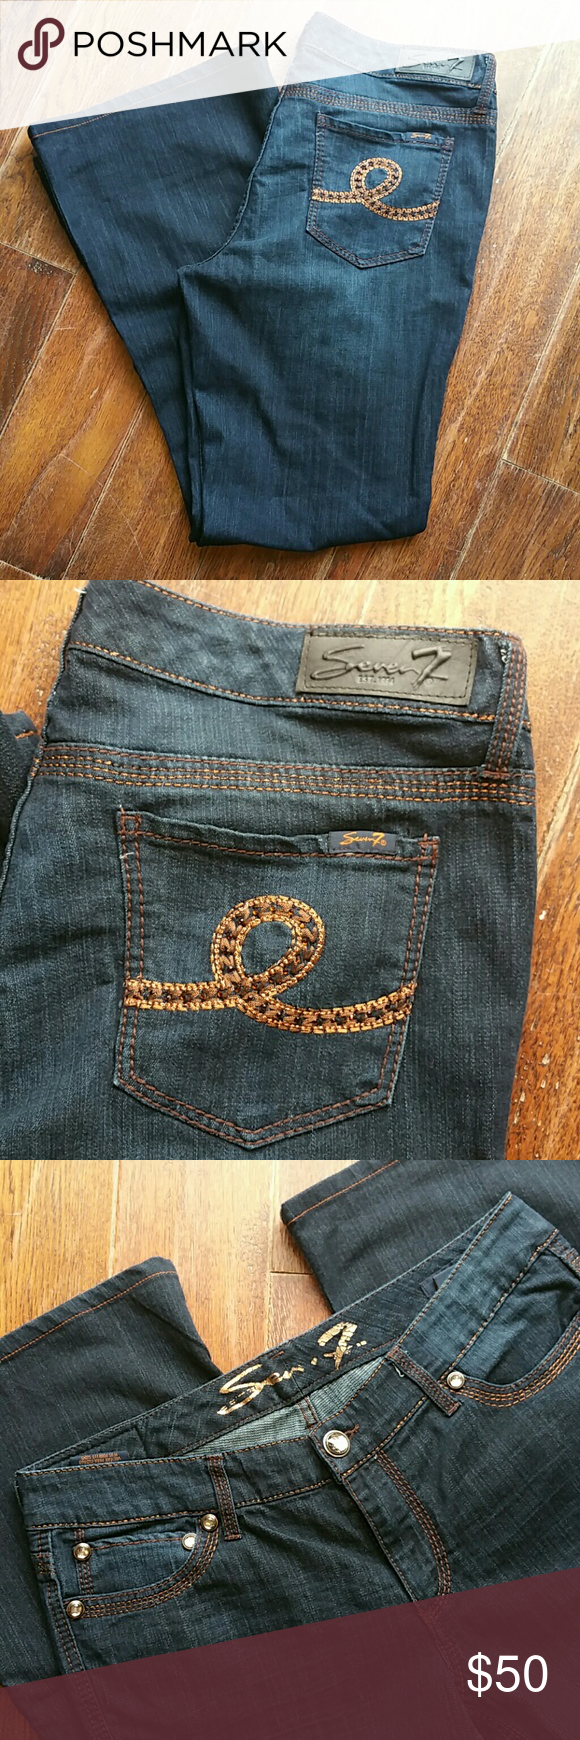 Seven 7 jeans EUC 14 A beautiful pair of dark wash denim  jeans size 14 with  strech, hems are flared and  in great condition threading design is a gorgeous copper color and pockets in front have diamond studs Seven7 Jeans Flare & Wide Leg